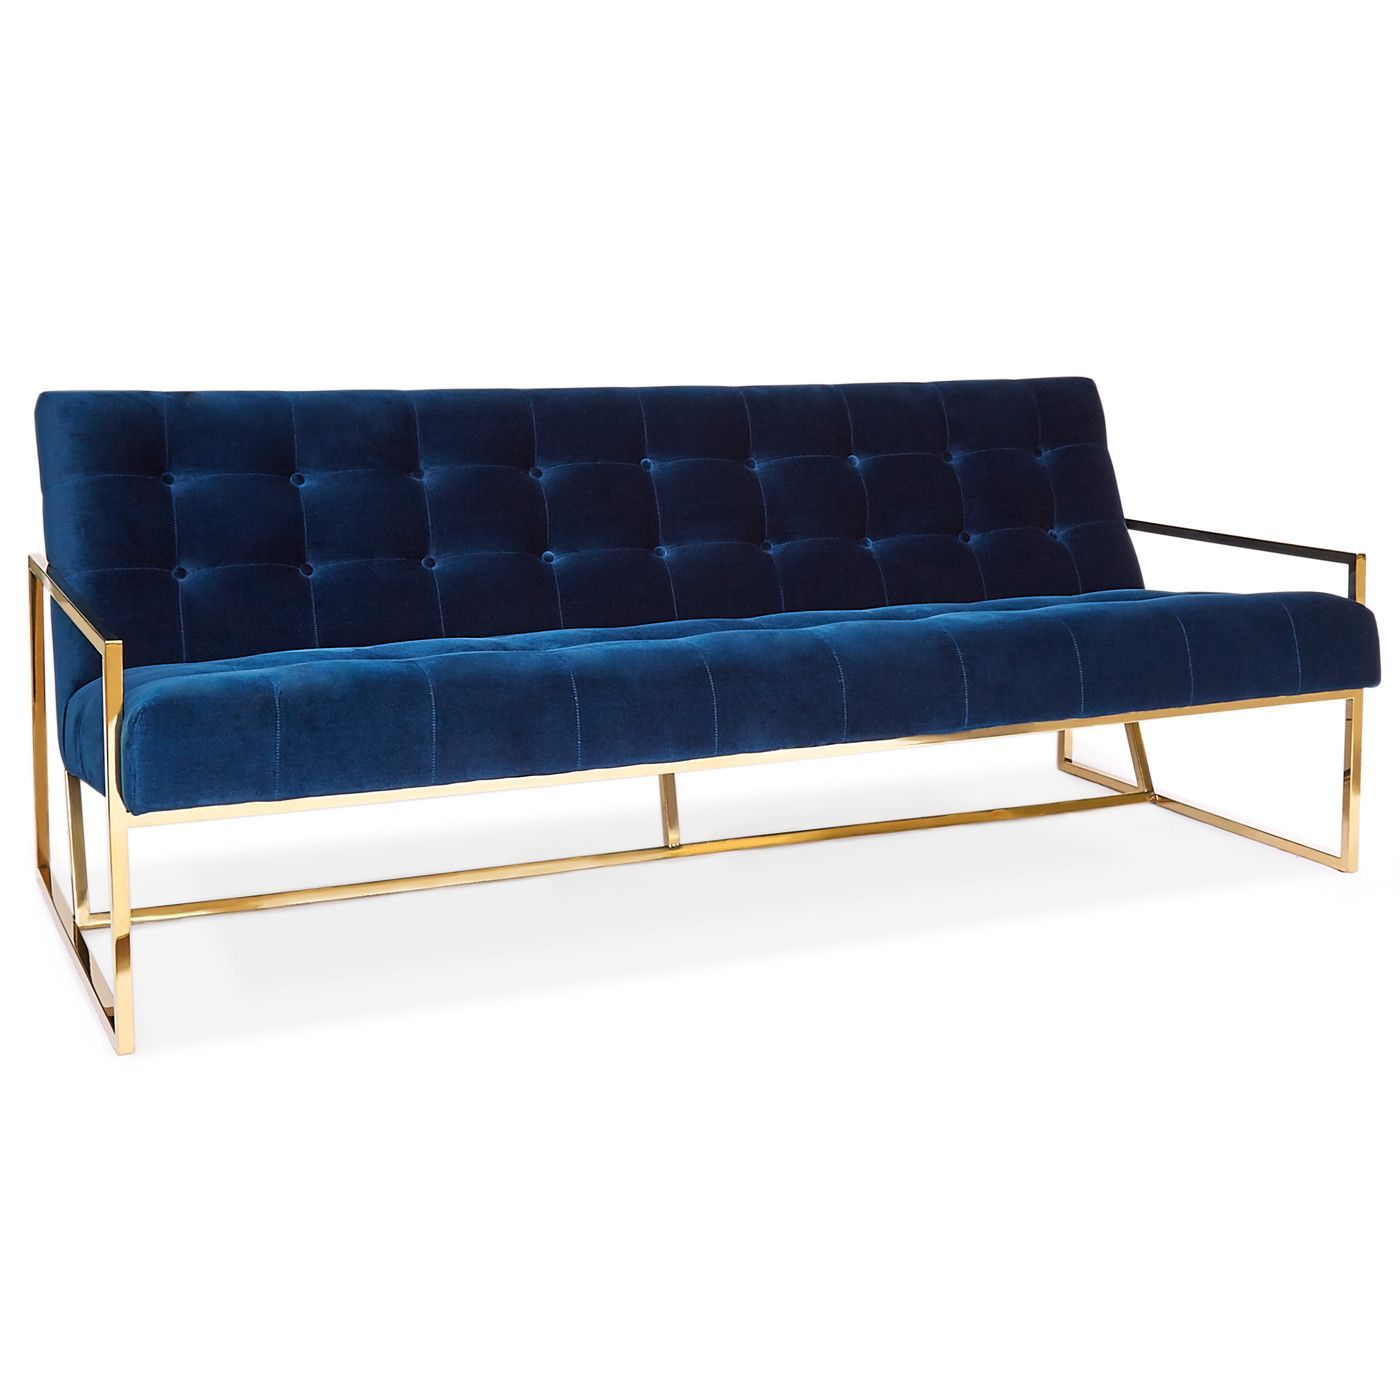 Sofa And Stuff Woodchester Goldfinger 2 Seat Sofa Products Pinterest Sofa Apartment